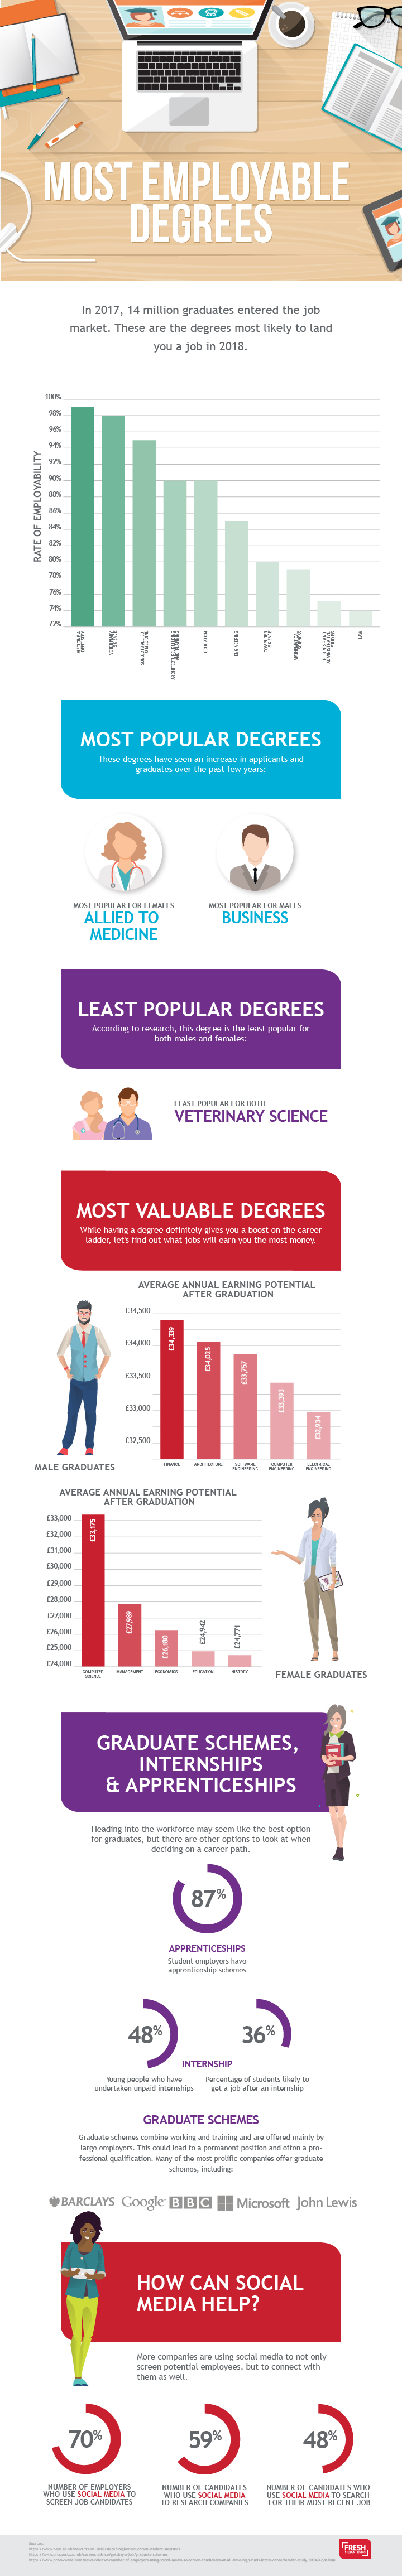 Most Employable Degree Infographic